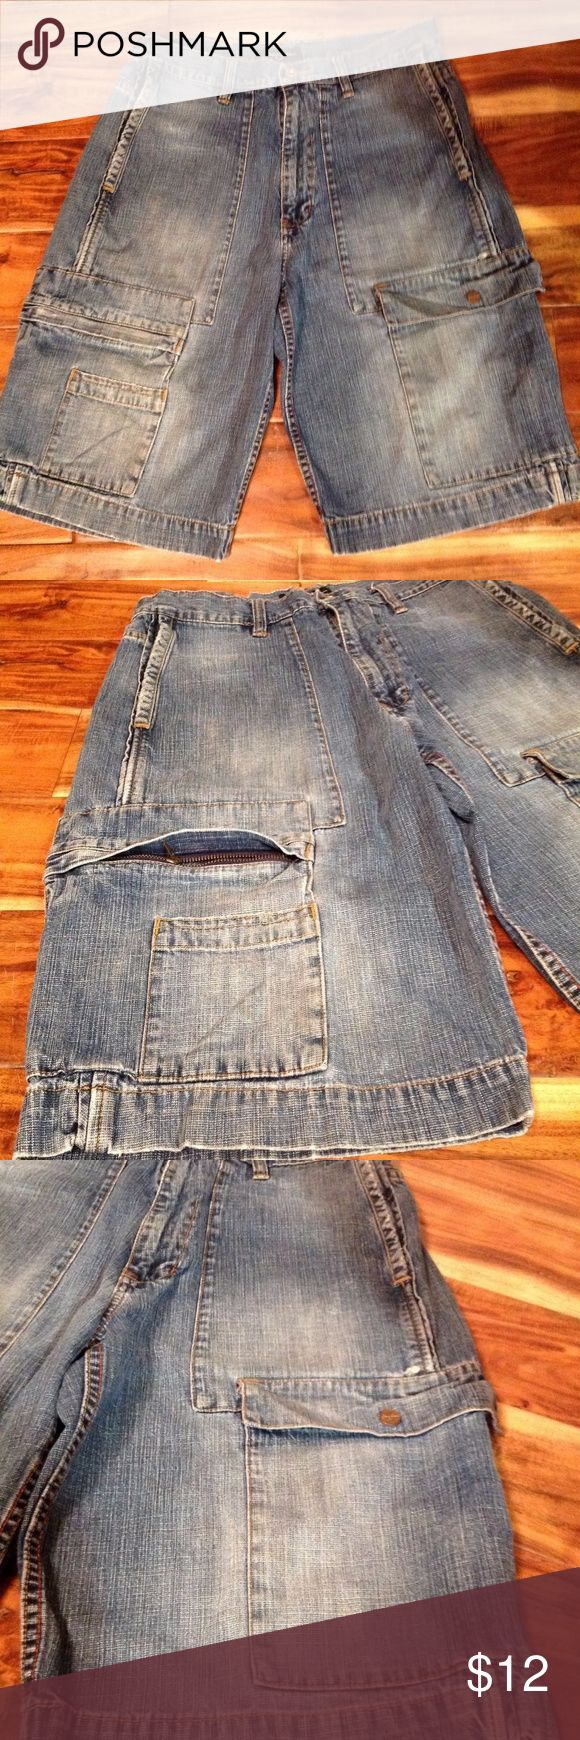 "SEAN JOHN Blue Jean Shorts Men's Sean John Blue Jean Shorts Size 32 100% Cotton Denim.  32"" waist and length measures 24"". Sean John Shorts Jean Shorts"